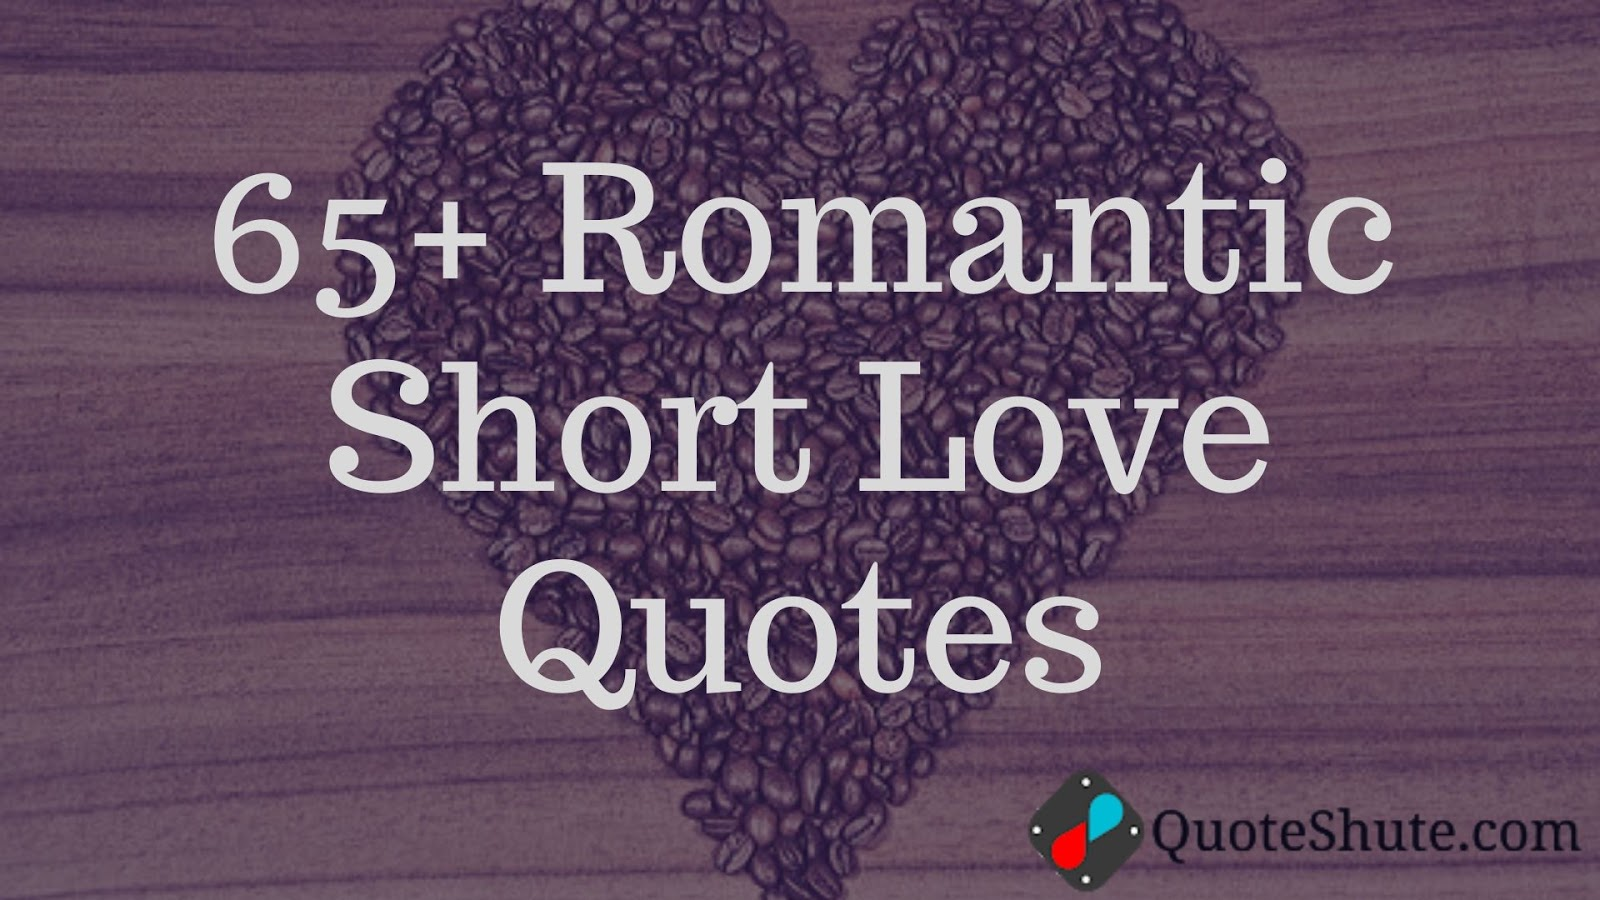 65 Romantic Short Love Quote For Him And Her